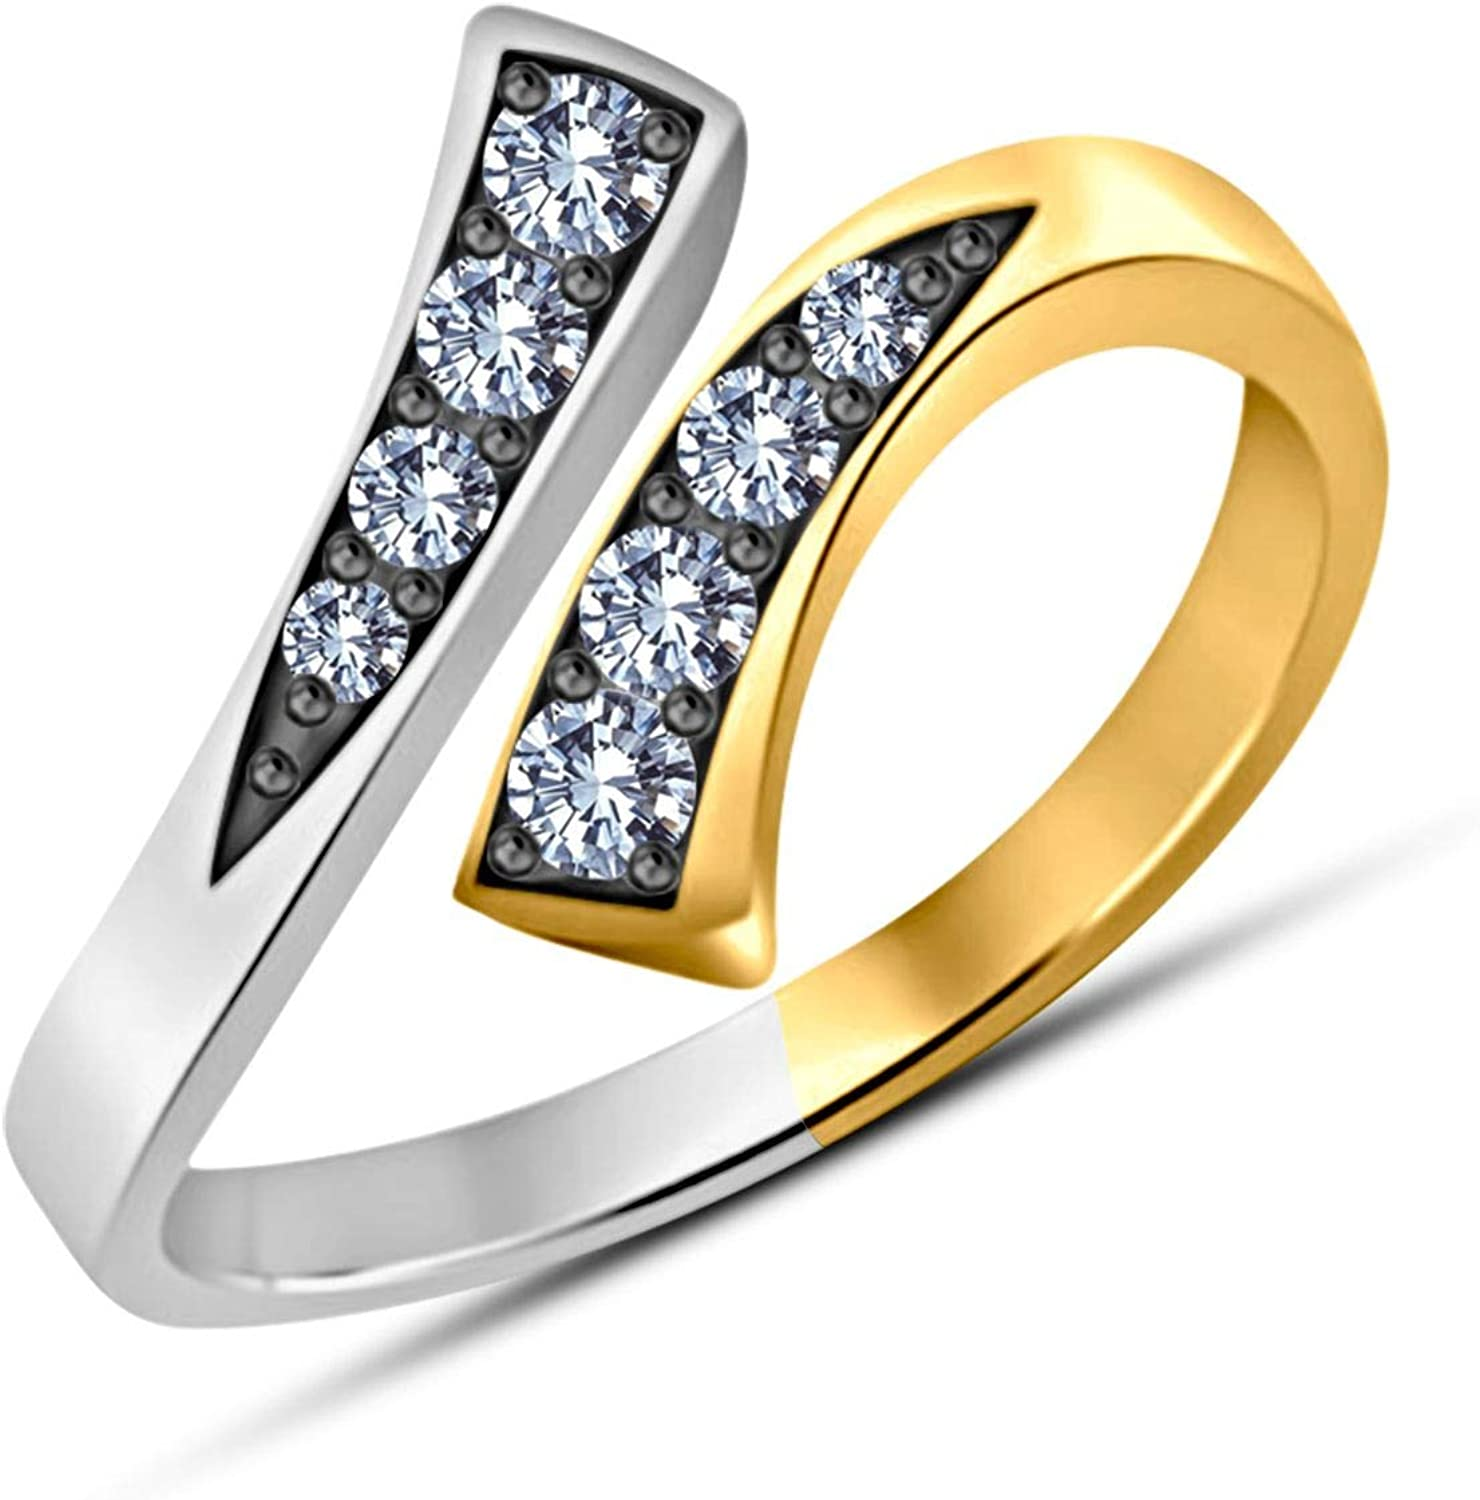 Gemstar Jewellery White Sim Diamond Pure 925 Silver 14k Two Tone Gold Over Adjustable Bypass Toe Ring